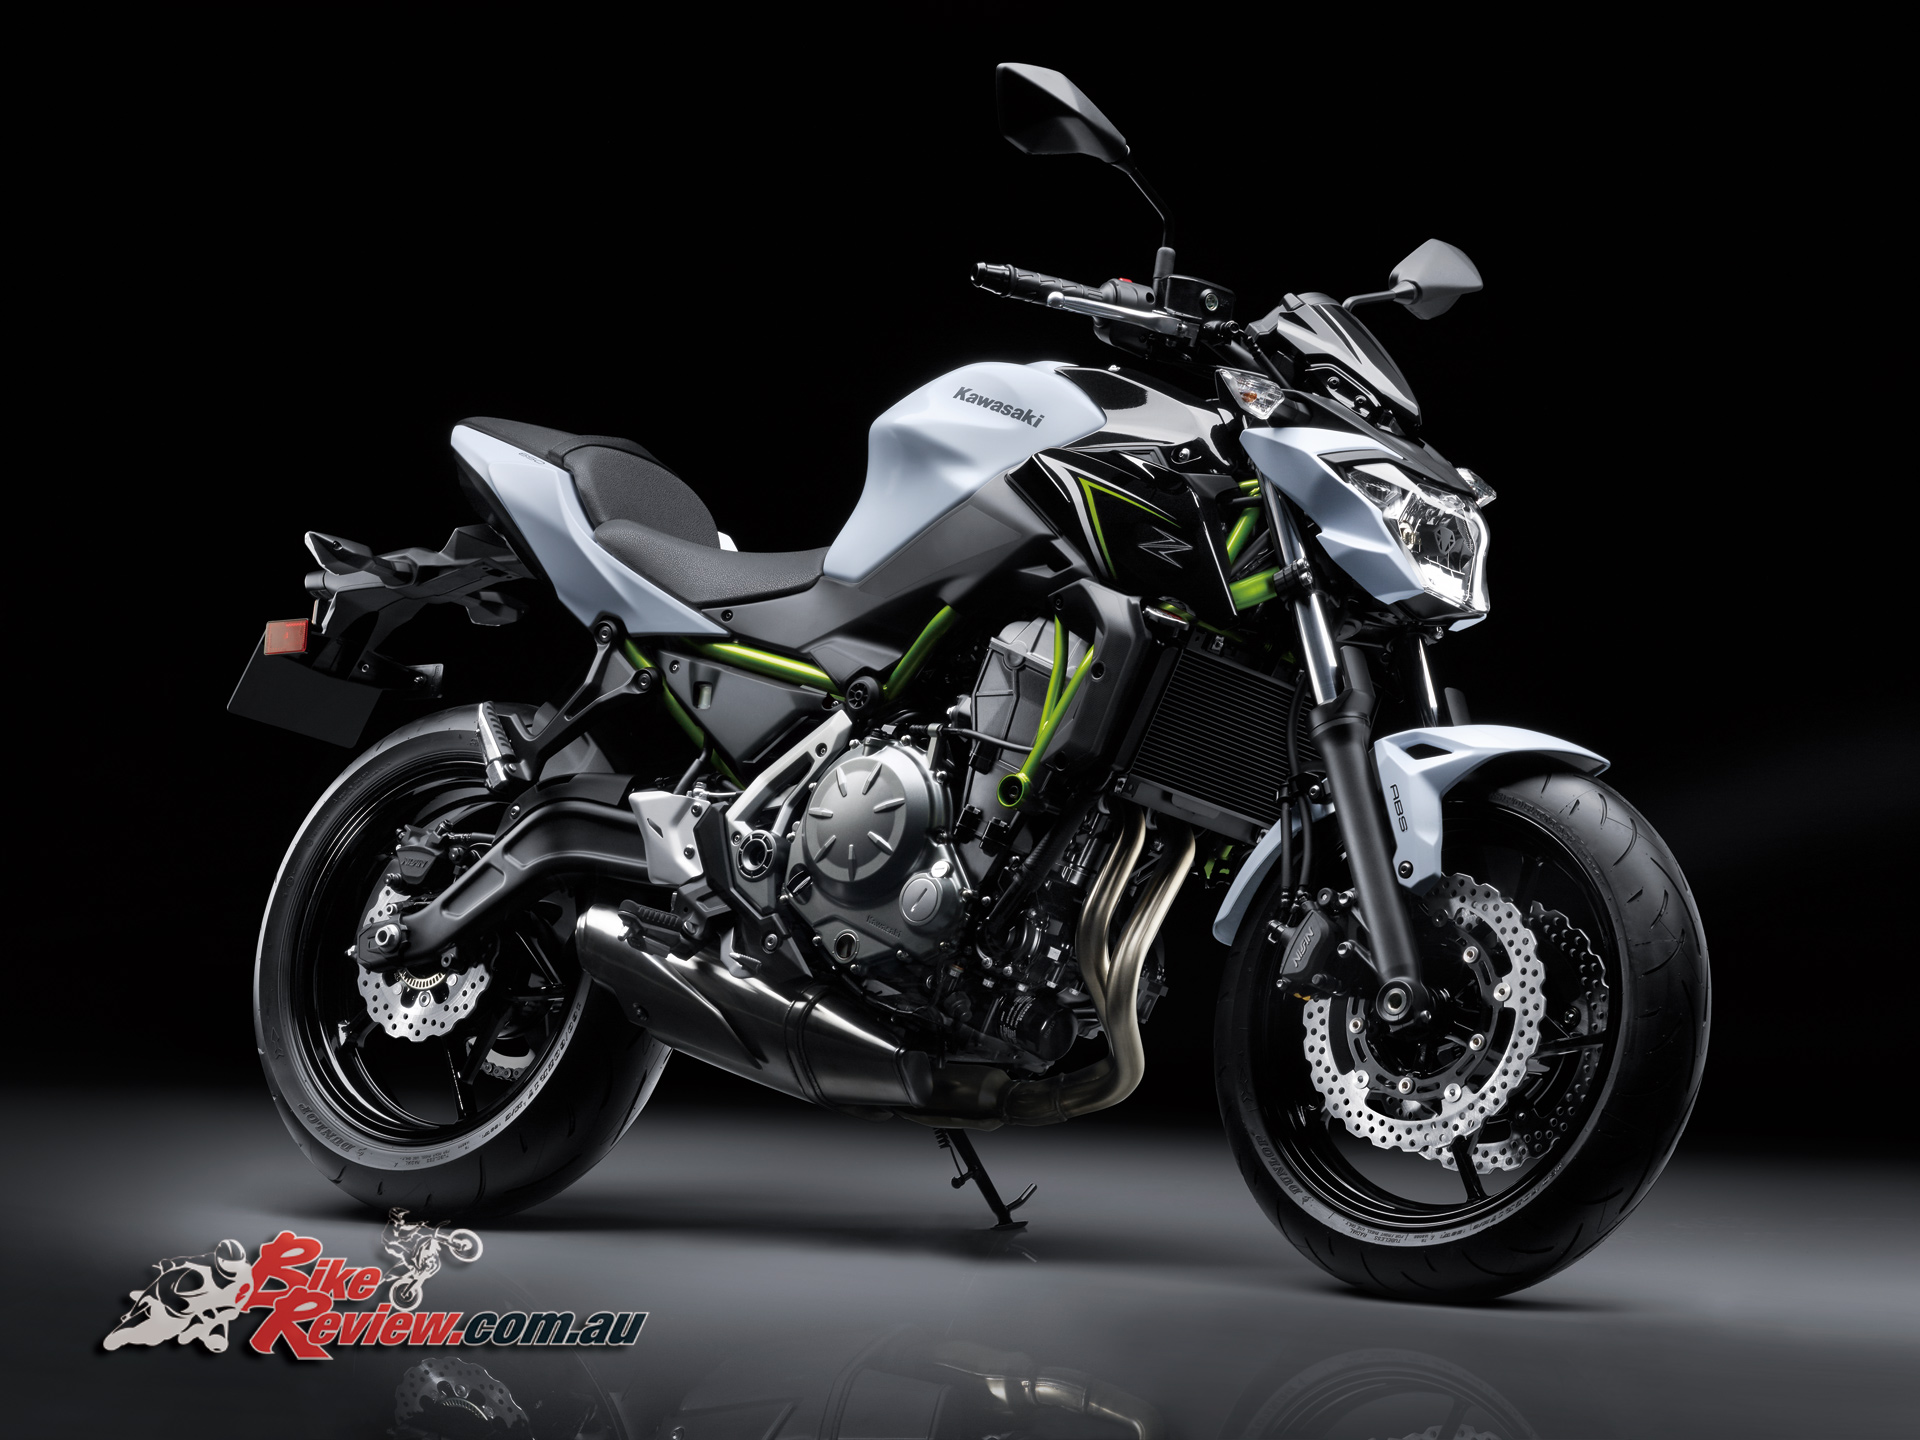 2017 kawasaki z650 revealed - bike review